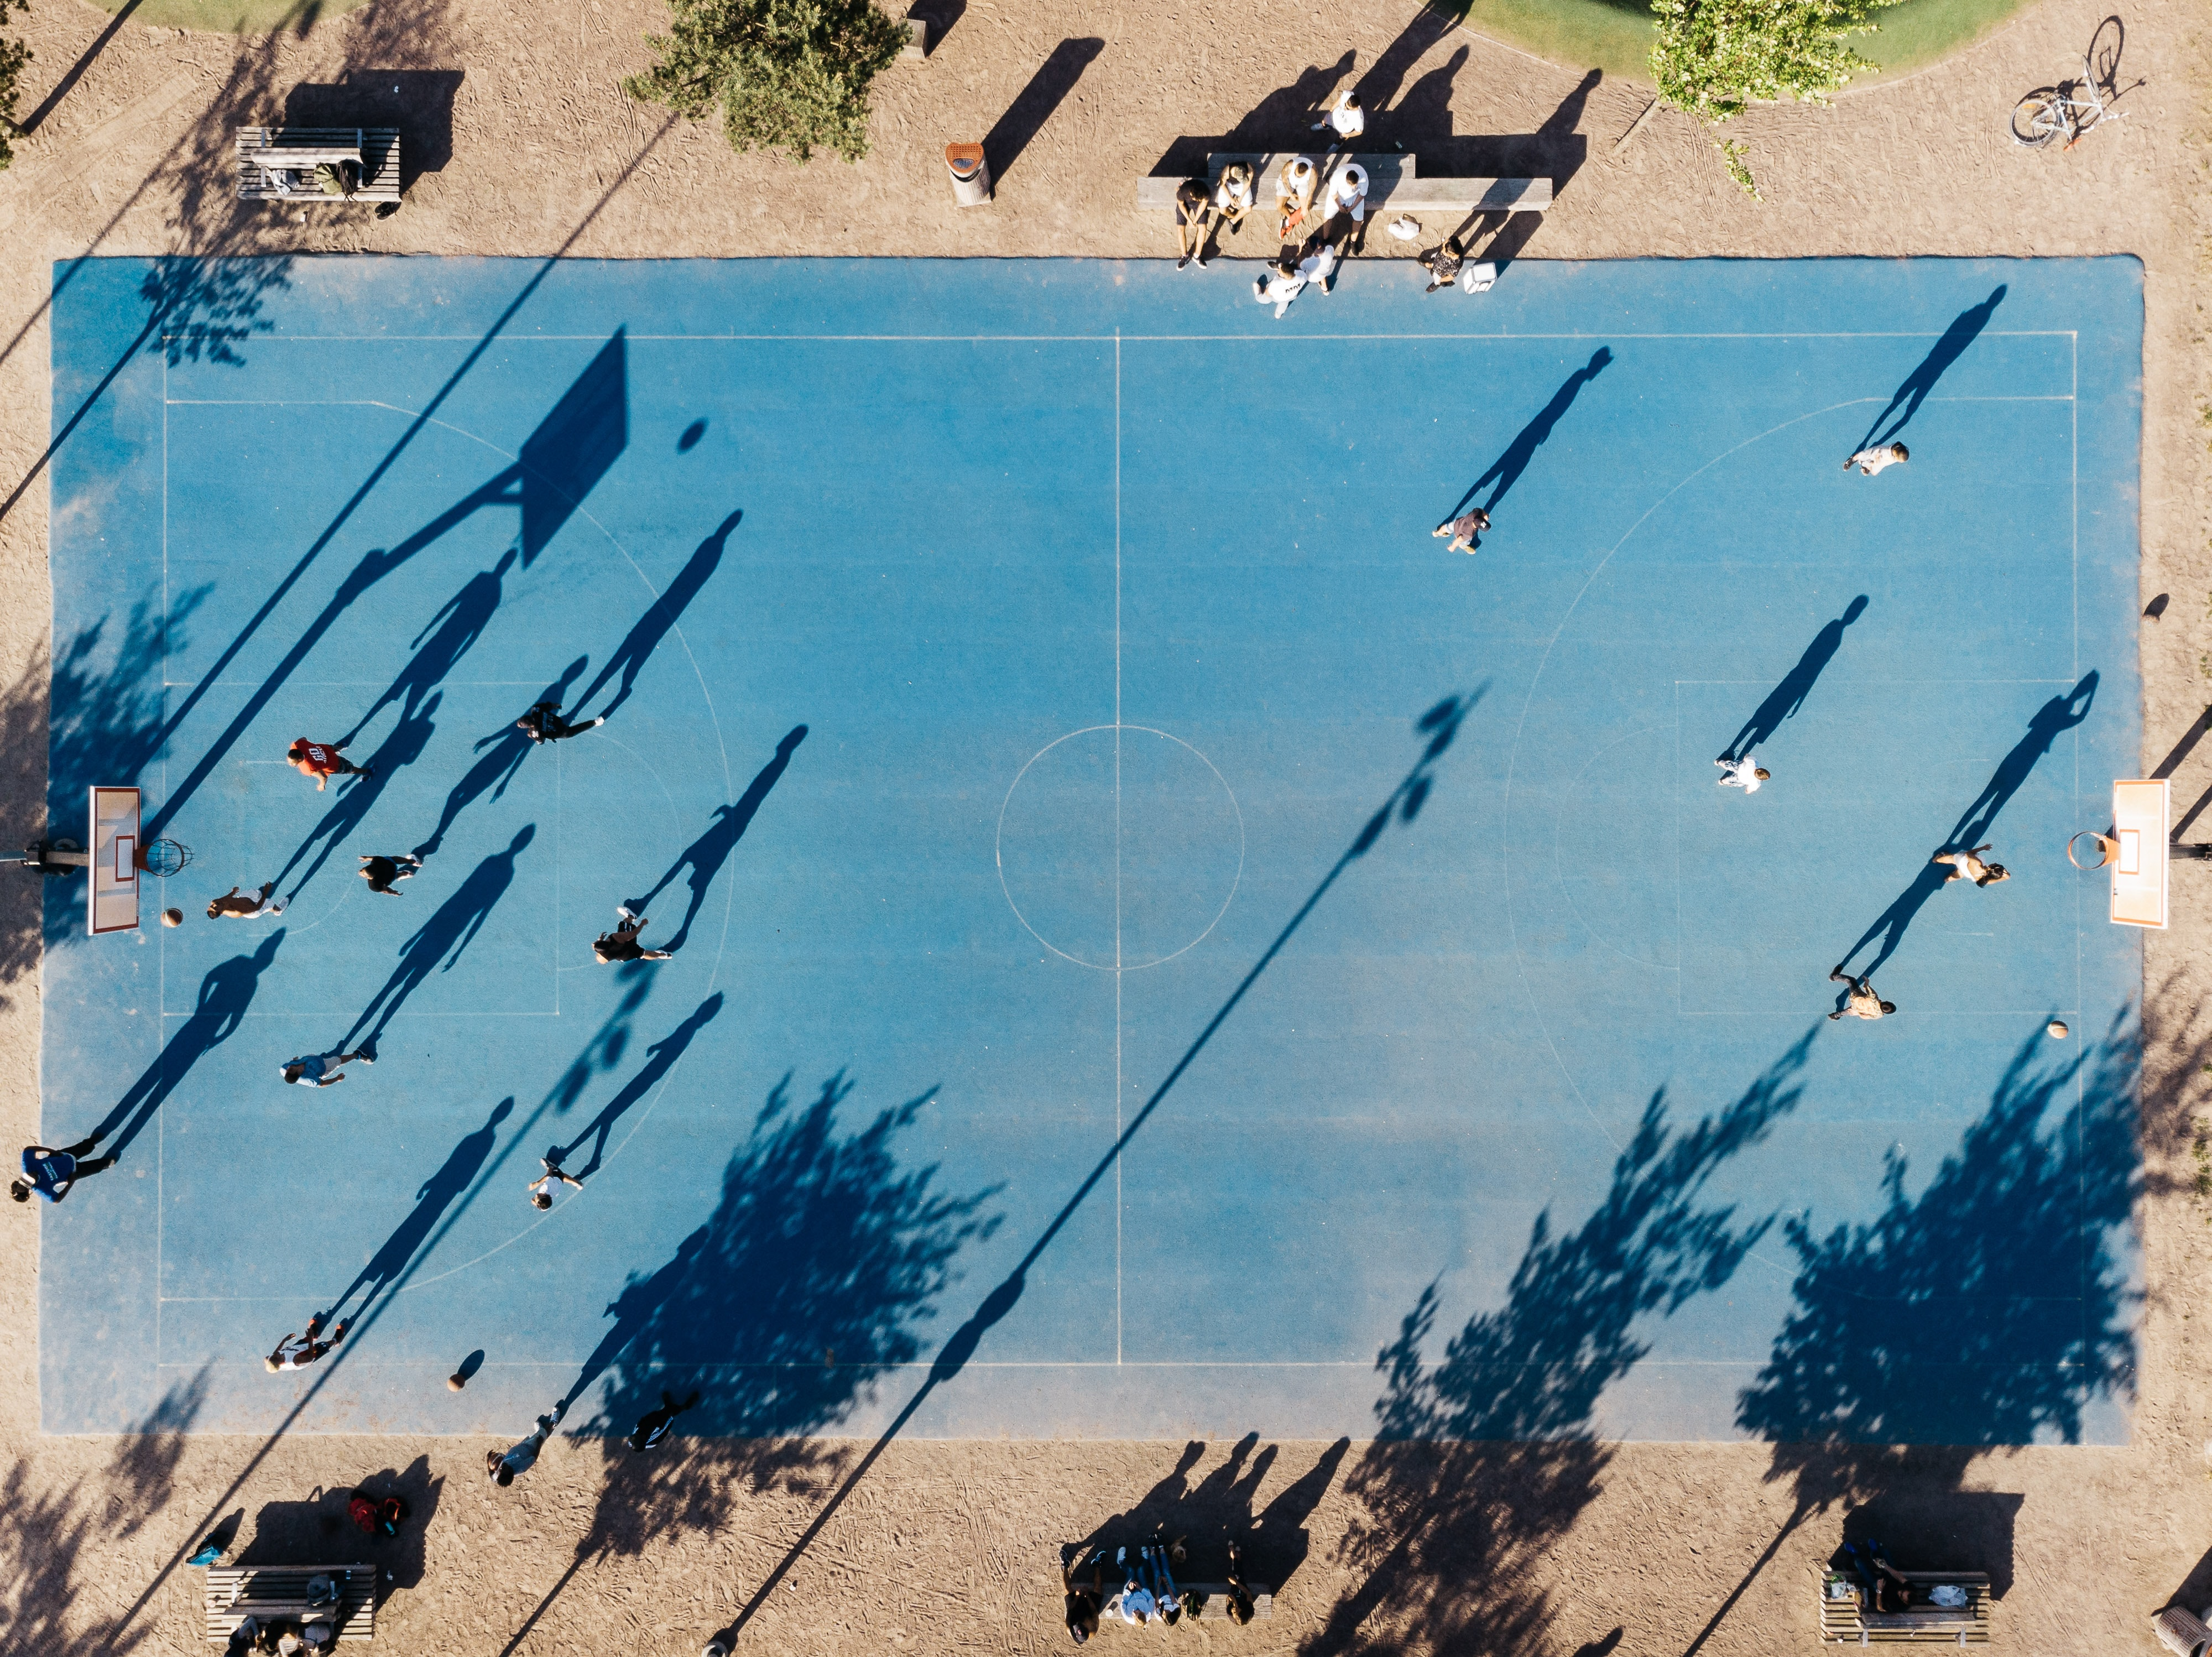 aerial view of basketball court with players inside